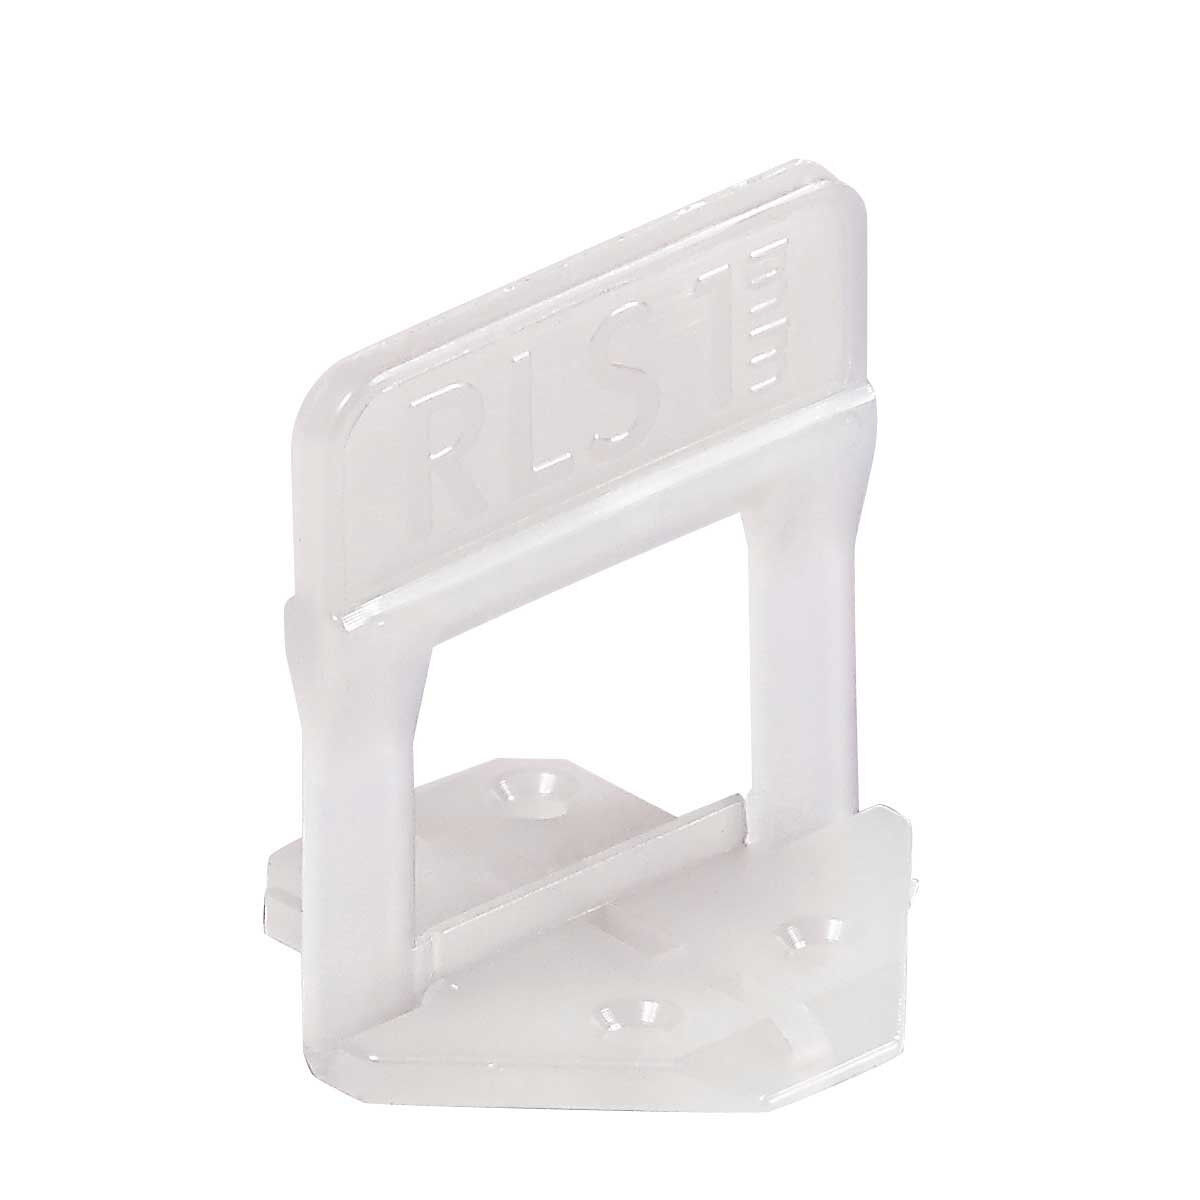 Strictly Ceilings Piranha Hold Down Clip Ceiling Tile Grid Clip